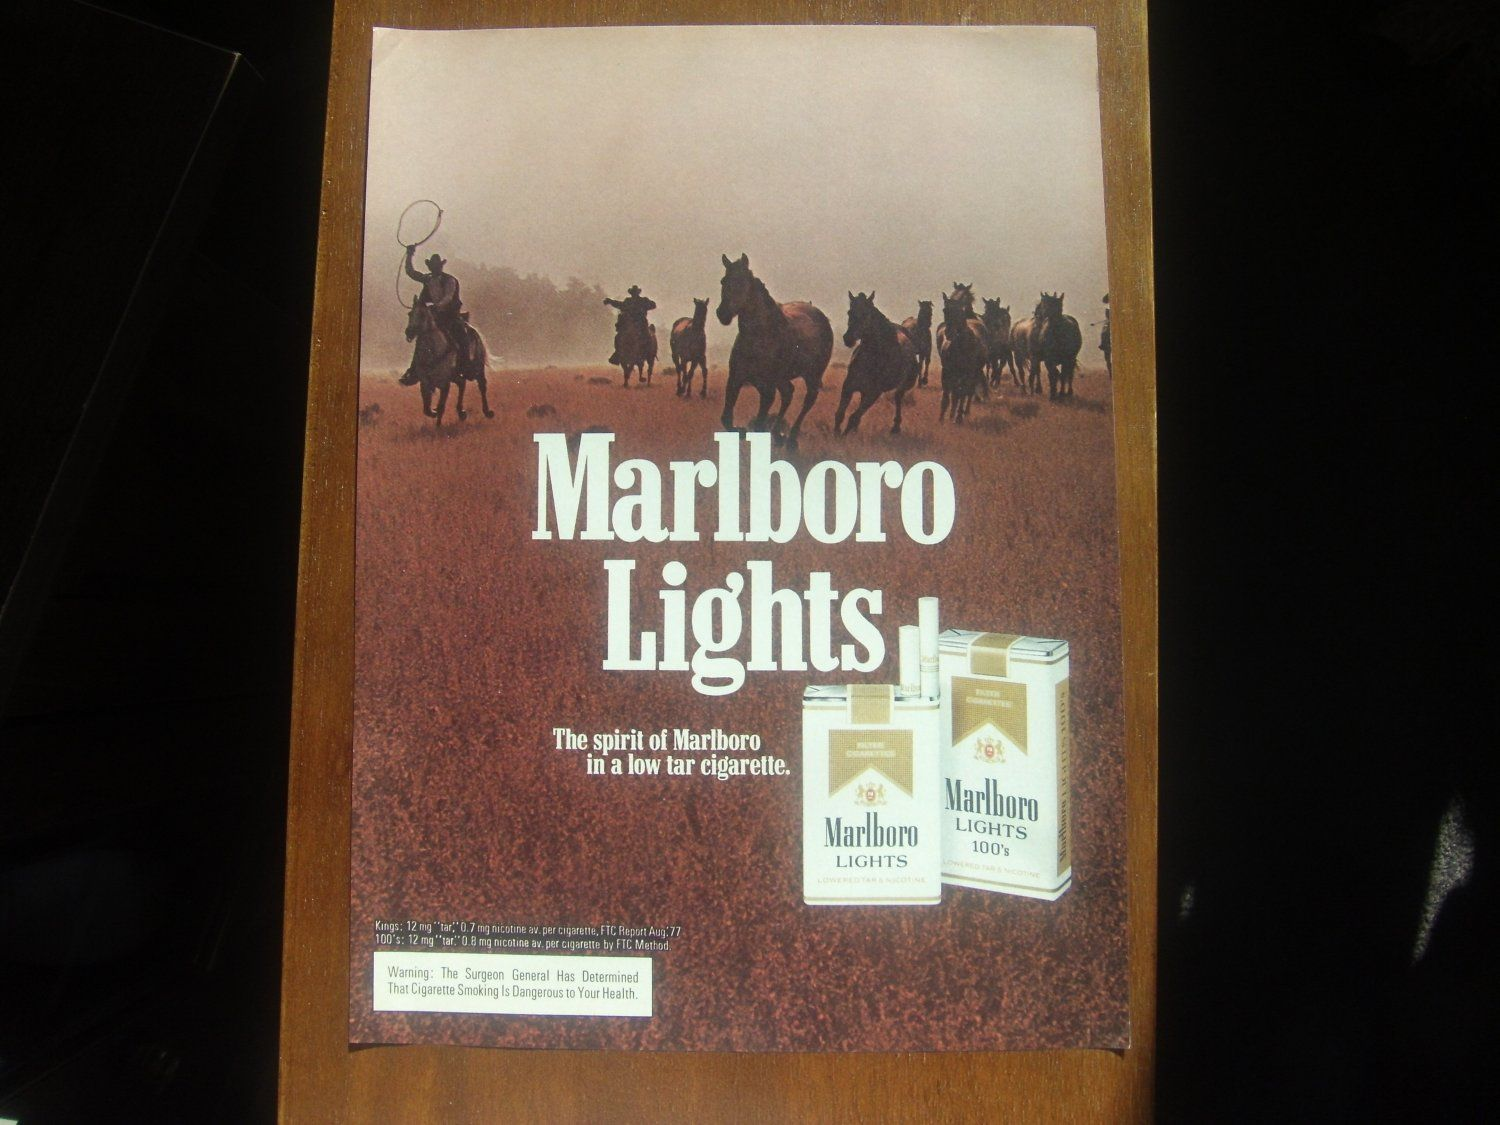 How much is a pack of cigarettes Marlboro Maryland